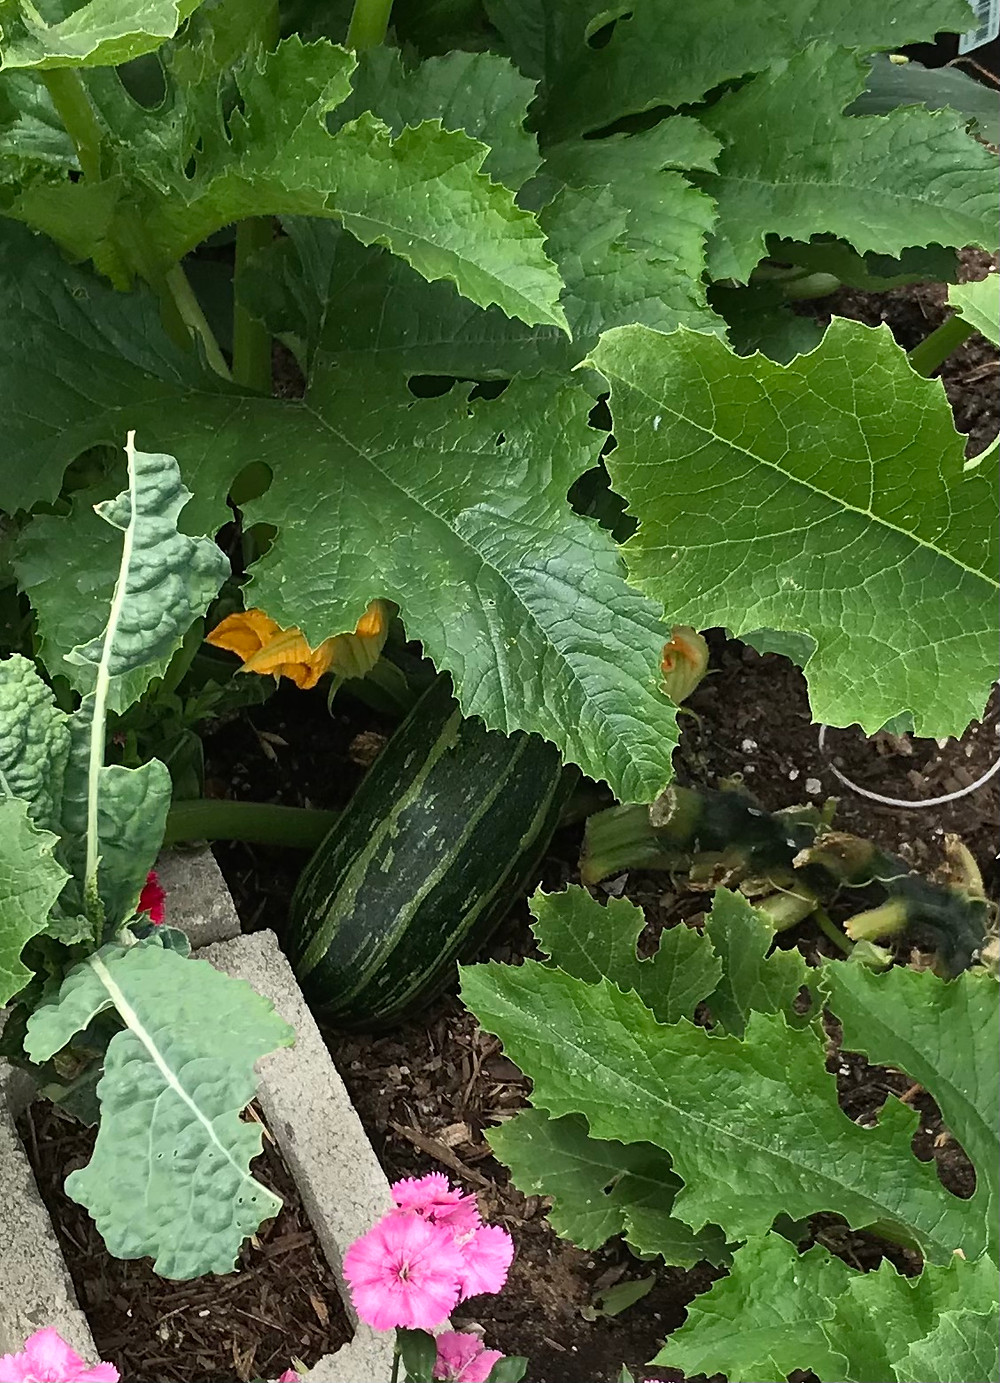 a fat zucchini is barely visible among glossy green leaves in a garden plot